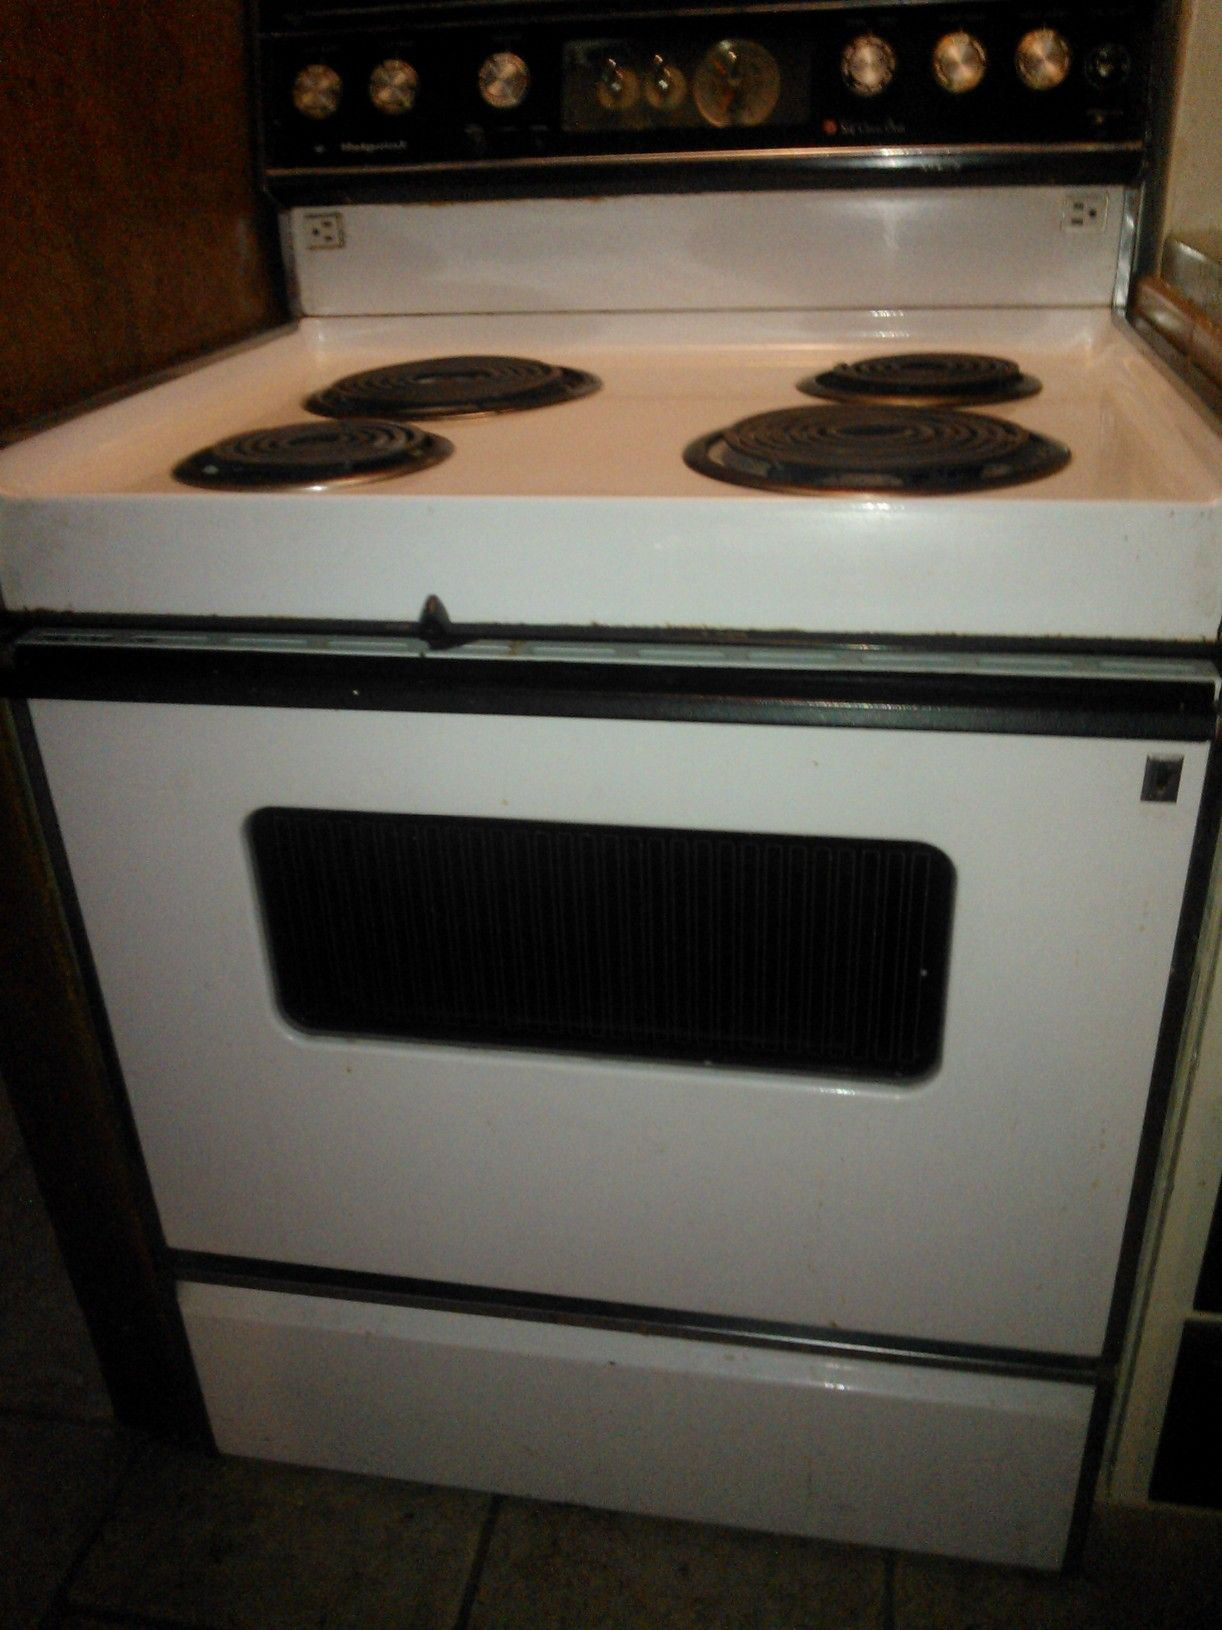 Whirlpool Oven Whirlpool Oven 10 Years Old